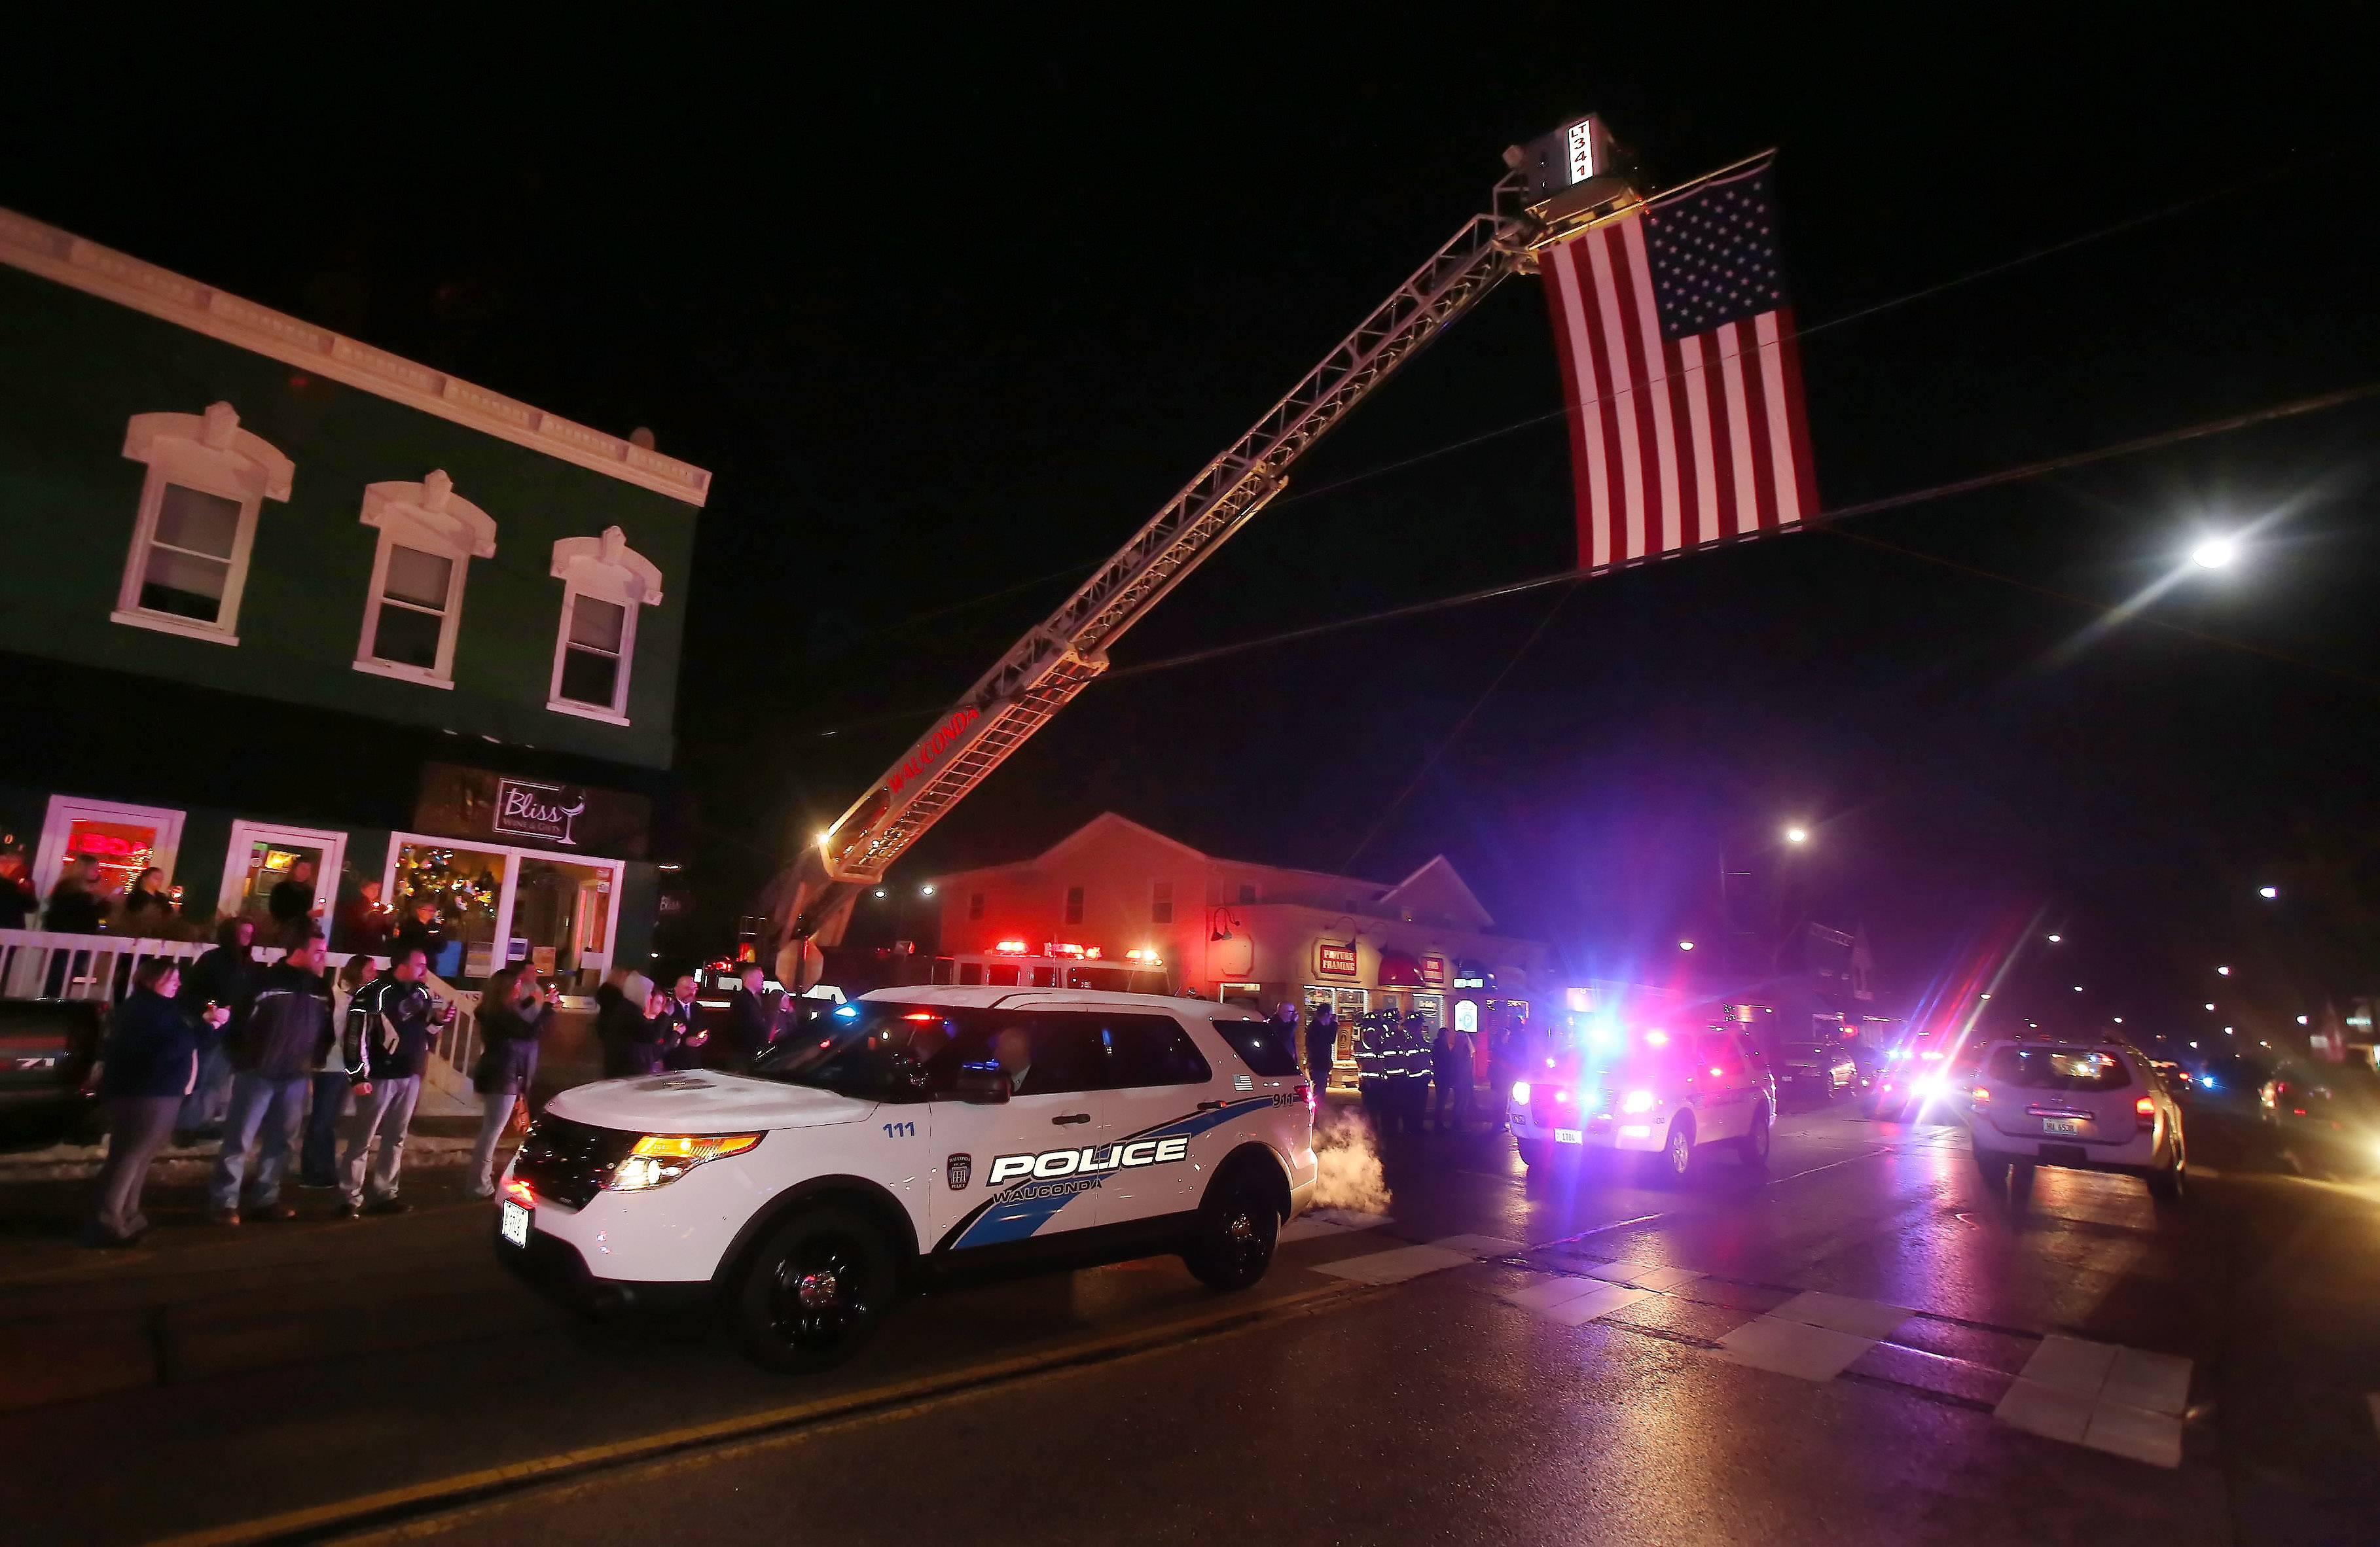 A procession of police and sheriff's cars drive under an American flag displayed by the Wauconda Fire Department as they escort the body of Wauconda police officer Eric Schultz through downtown after a funeral held at the Wauconda High School Thursday night. Schultz died after a lengthy battle with cancer.